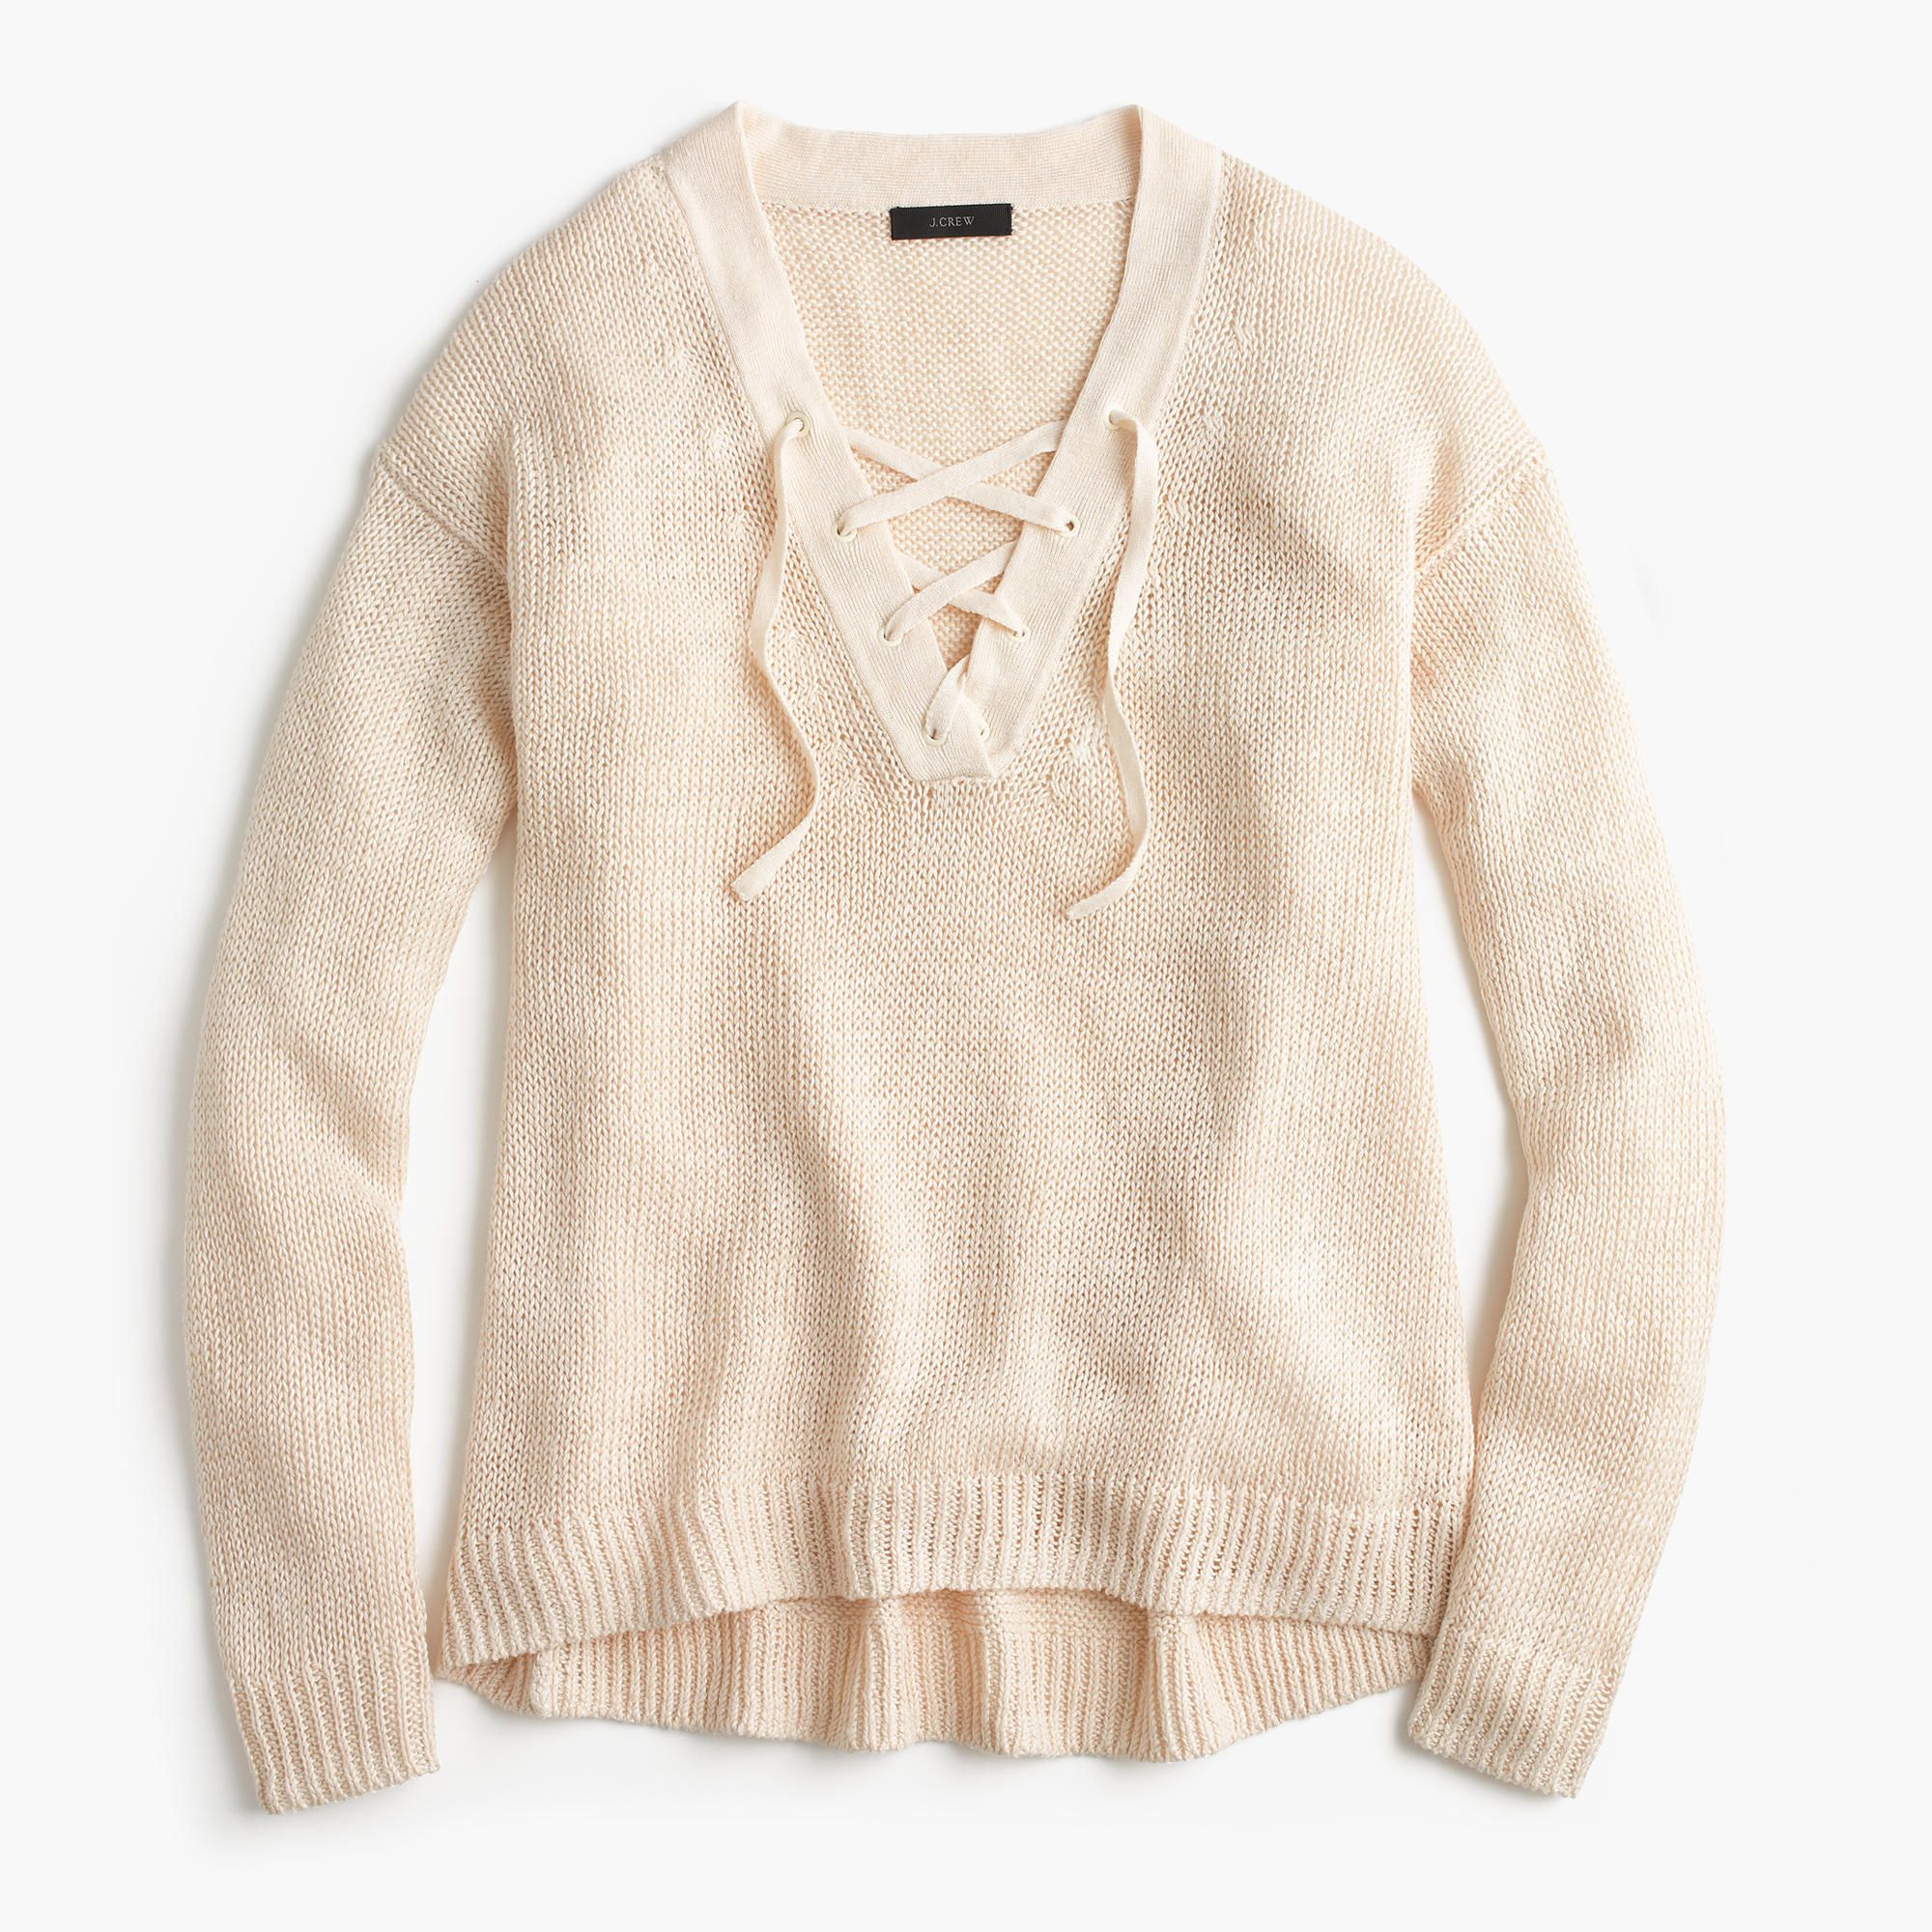 A lighter-weight linen sweater with a lace-up neckline is our ...